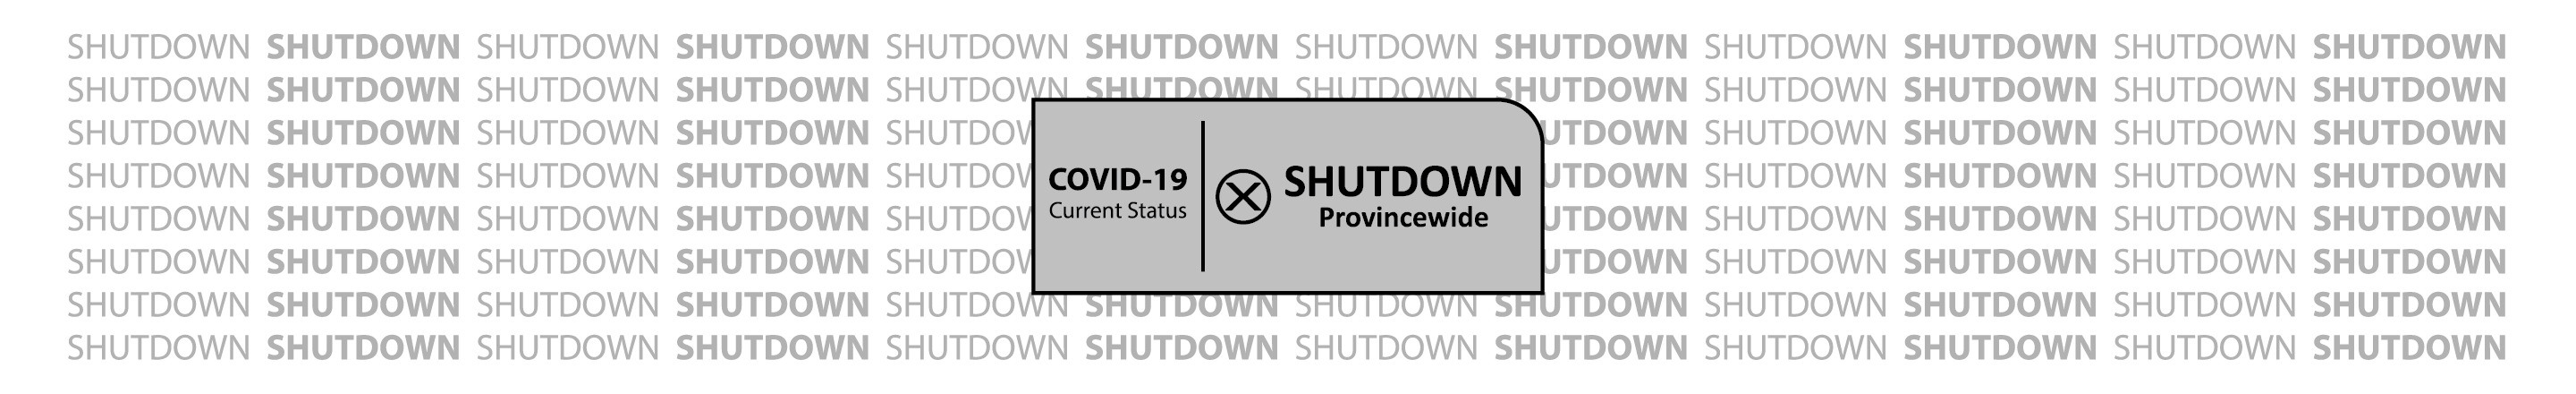 Covid-19 Current Status, shutdown province wide